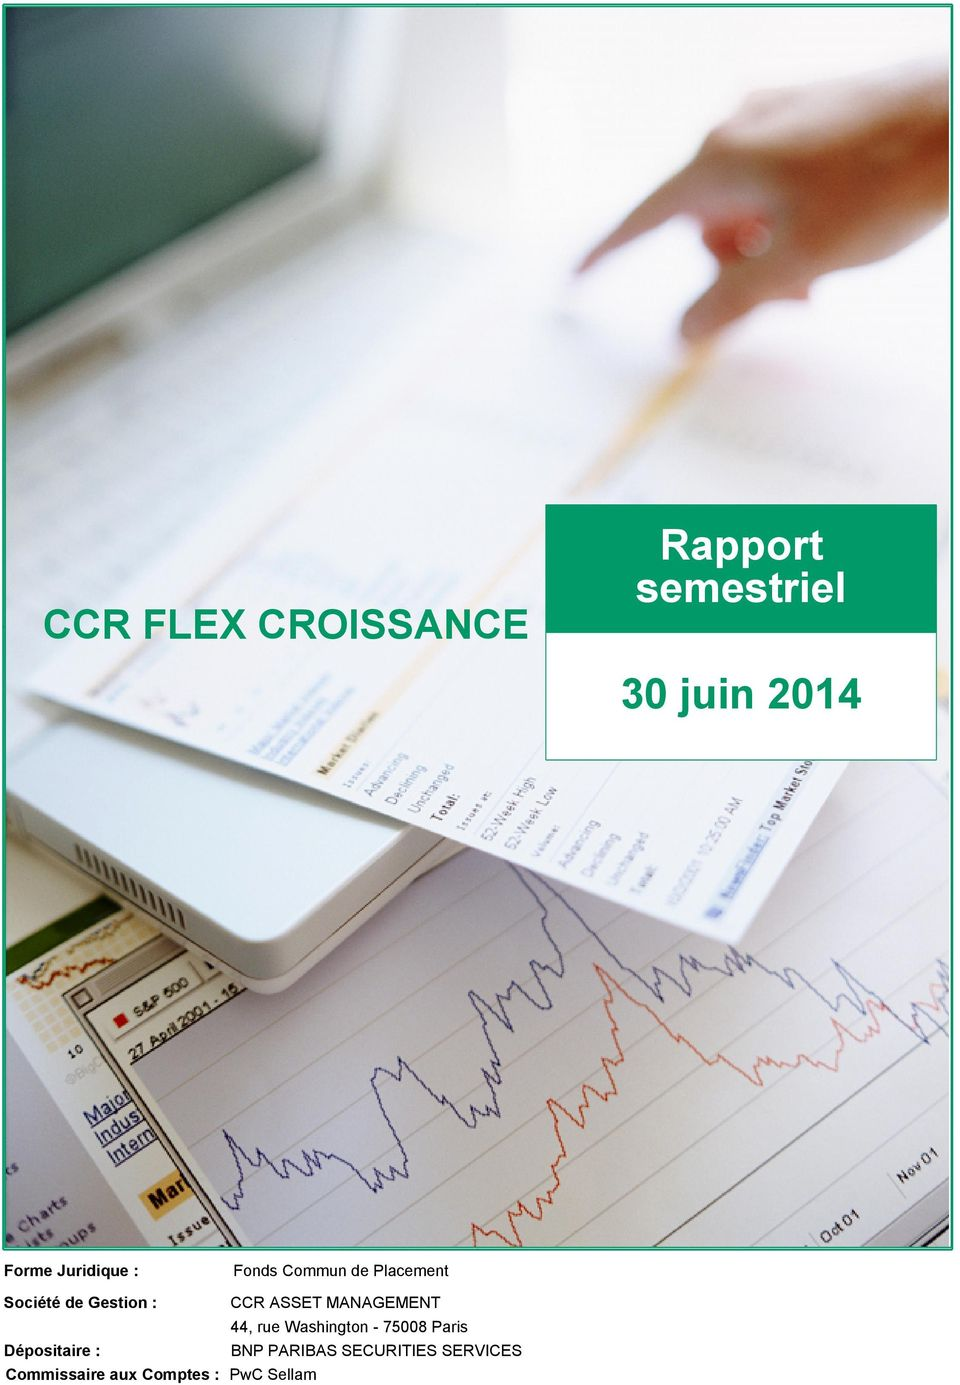 Comptes : Fonds Commun de Placement CCR ASSET MANAGEMENT 44,